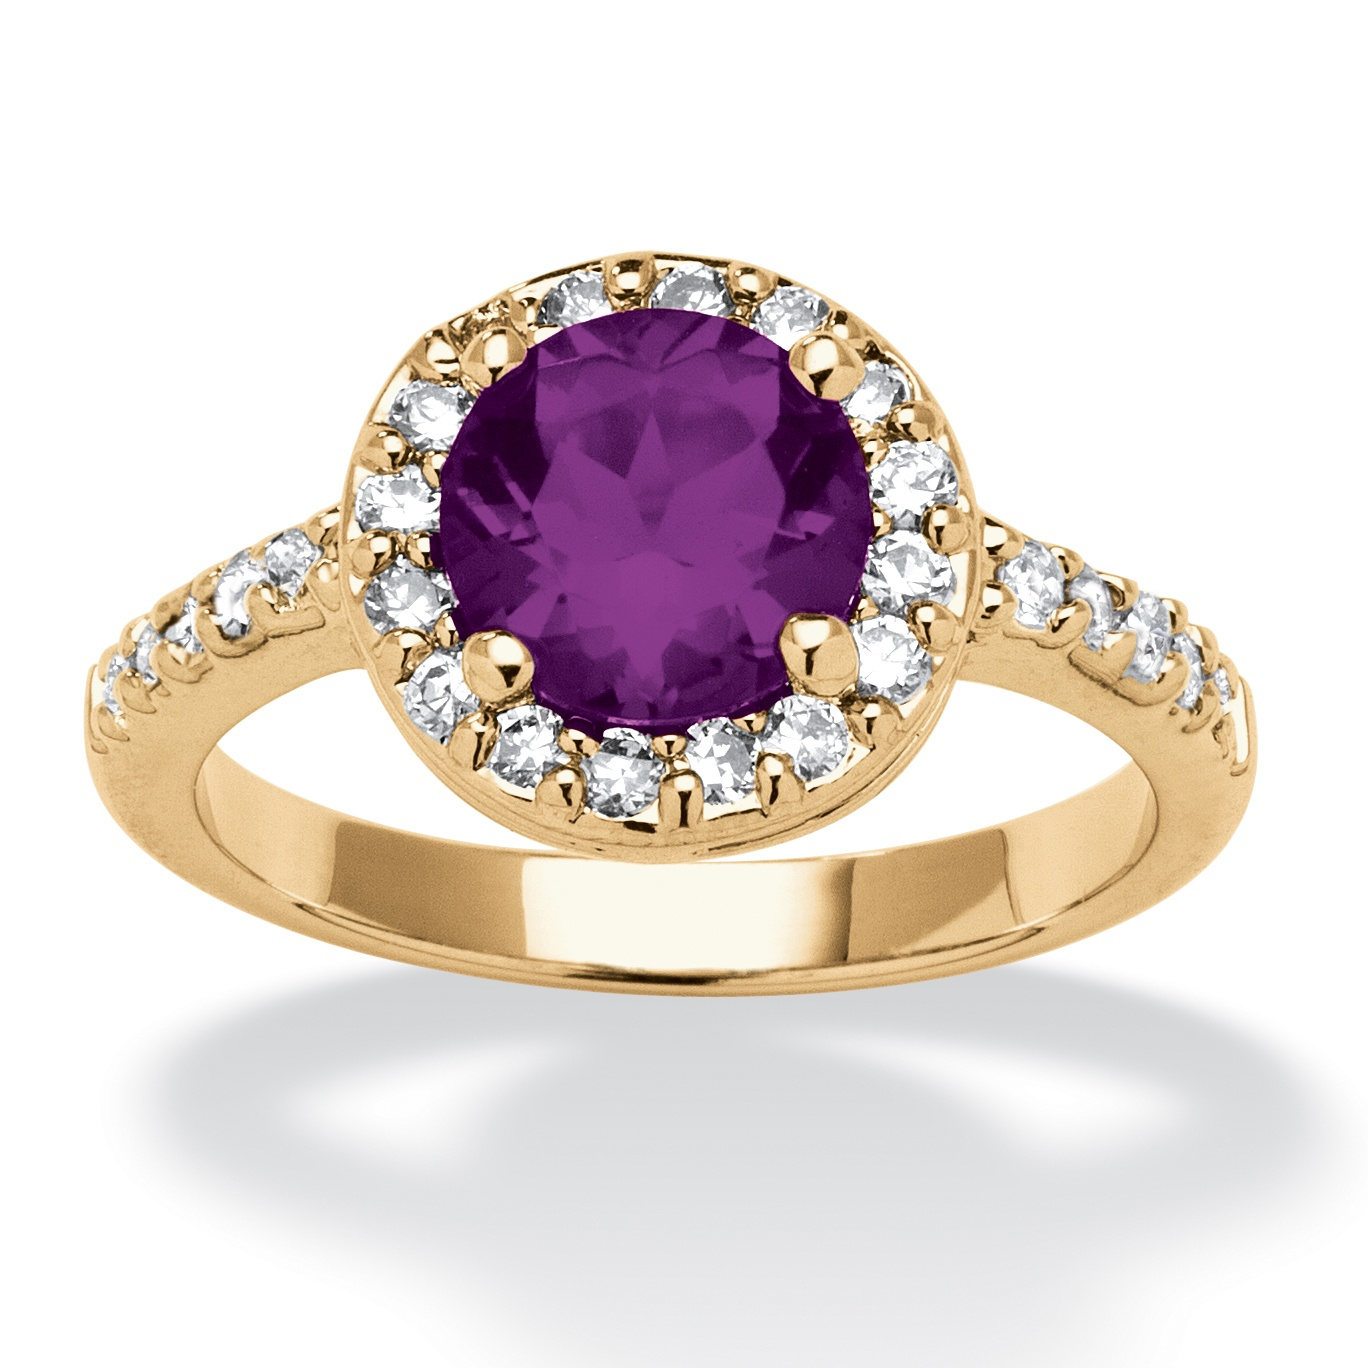 Round Birthstone and Cubic Zirconia Ring In Yellow Gold Tone - February- Simulated Amethyst